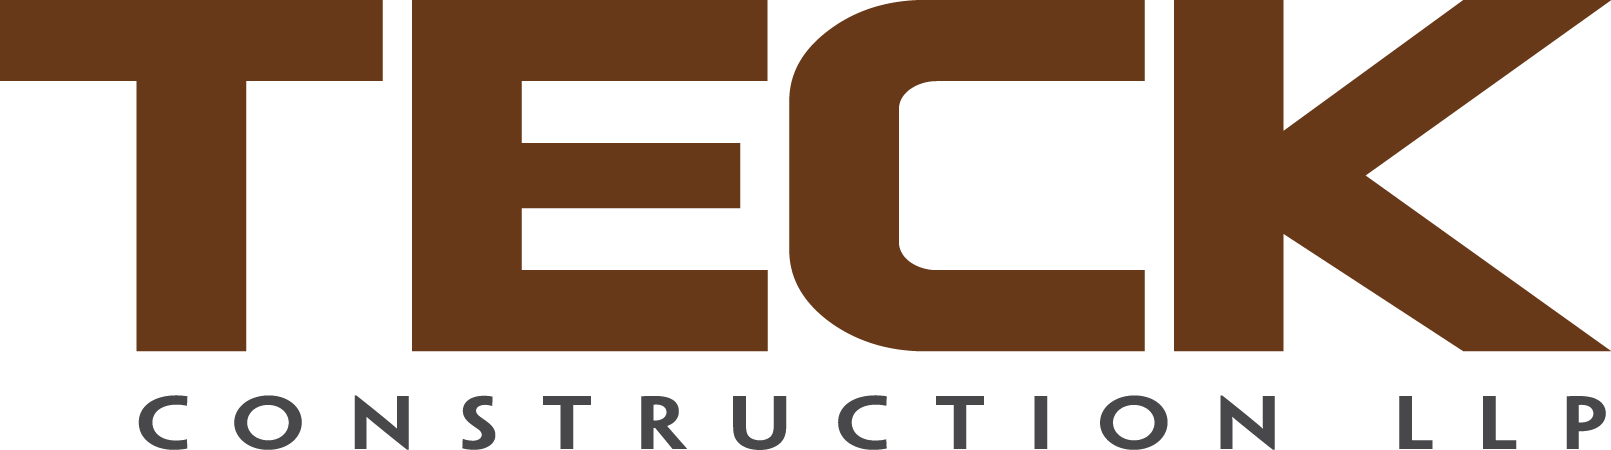 Tech Construction Logo